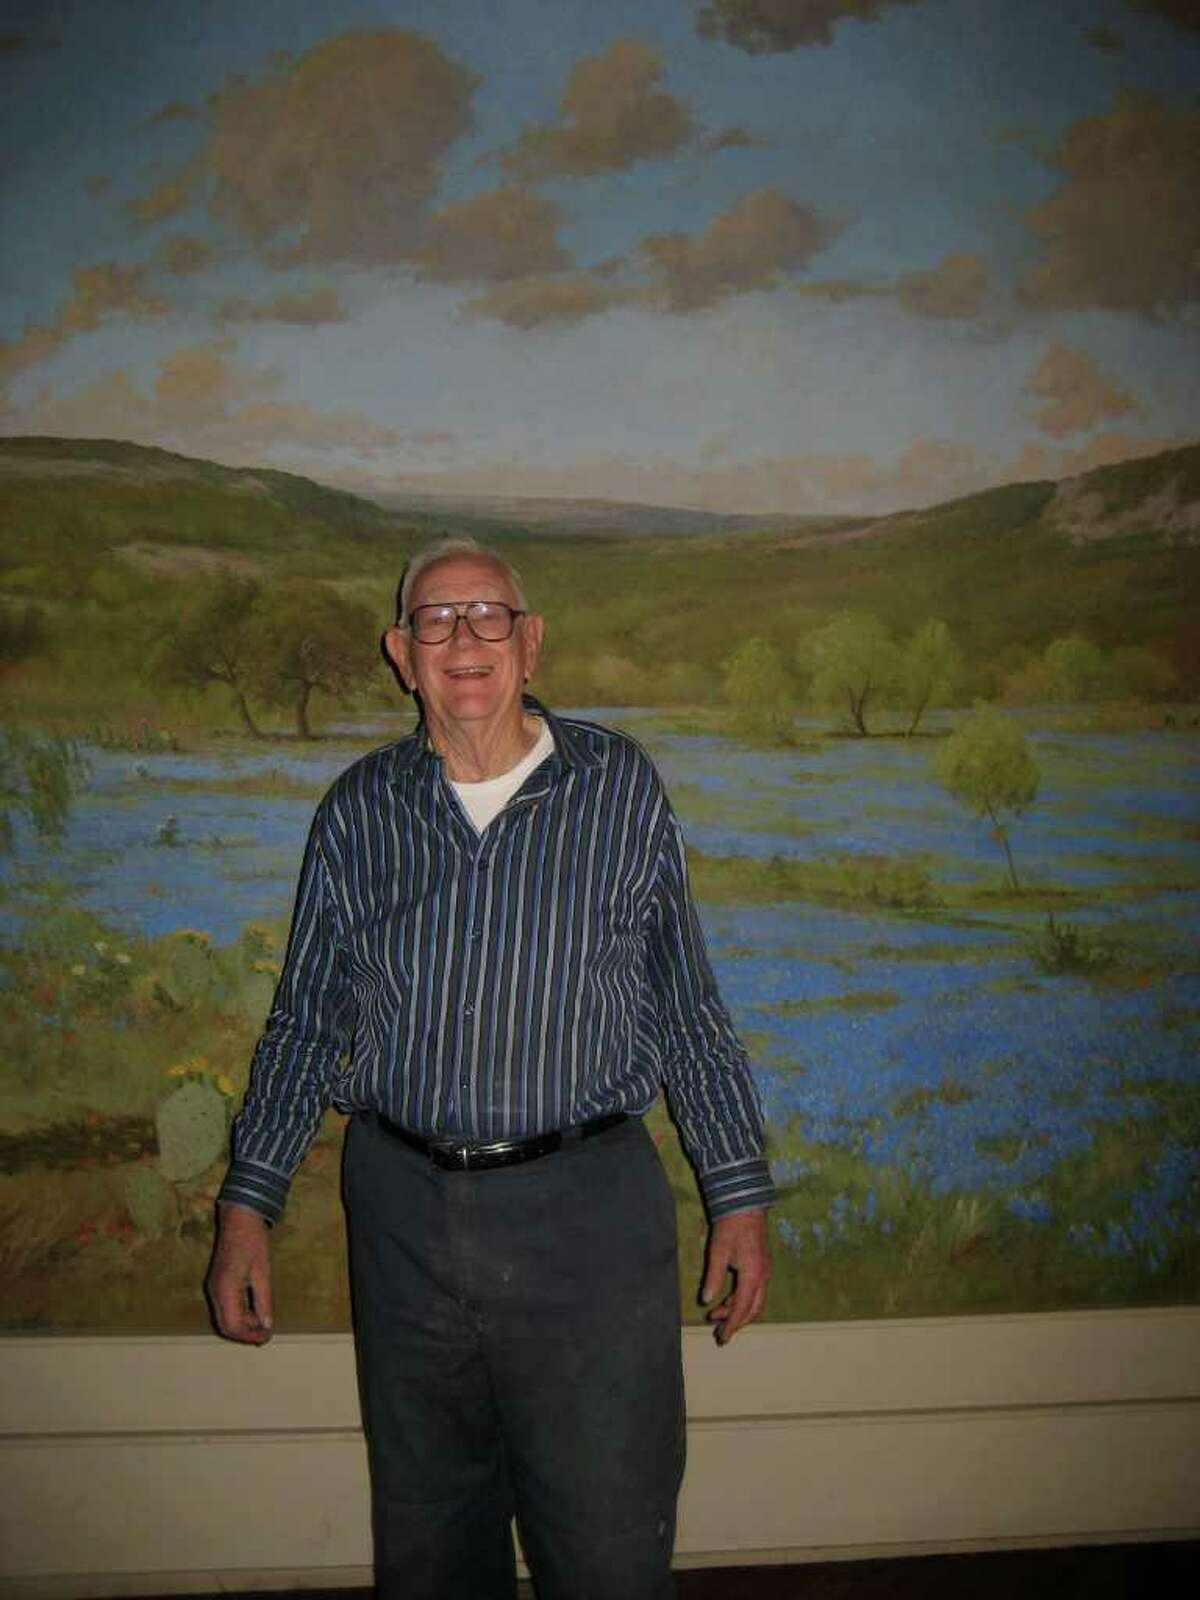 The 30-foot-wide mural of a bluebonnet field by prominent Hill Country painter Porfirio Salinas (1910Ð1973) may have survived the fire at the Wolfson Building. The Carter family hopes it will be donated to the Witte Museum. Here is David Carter in front on the painting.